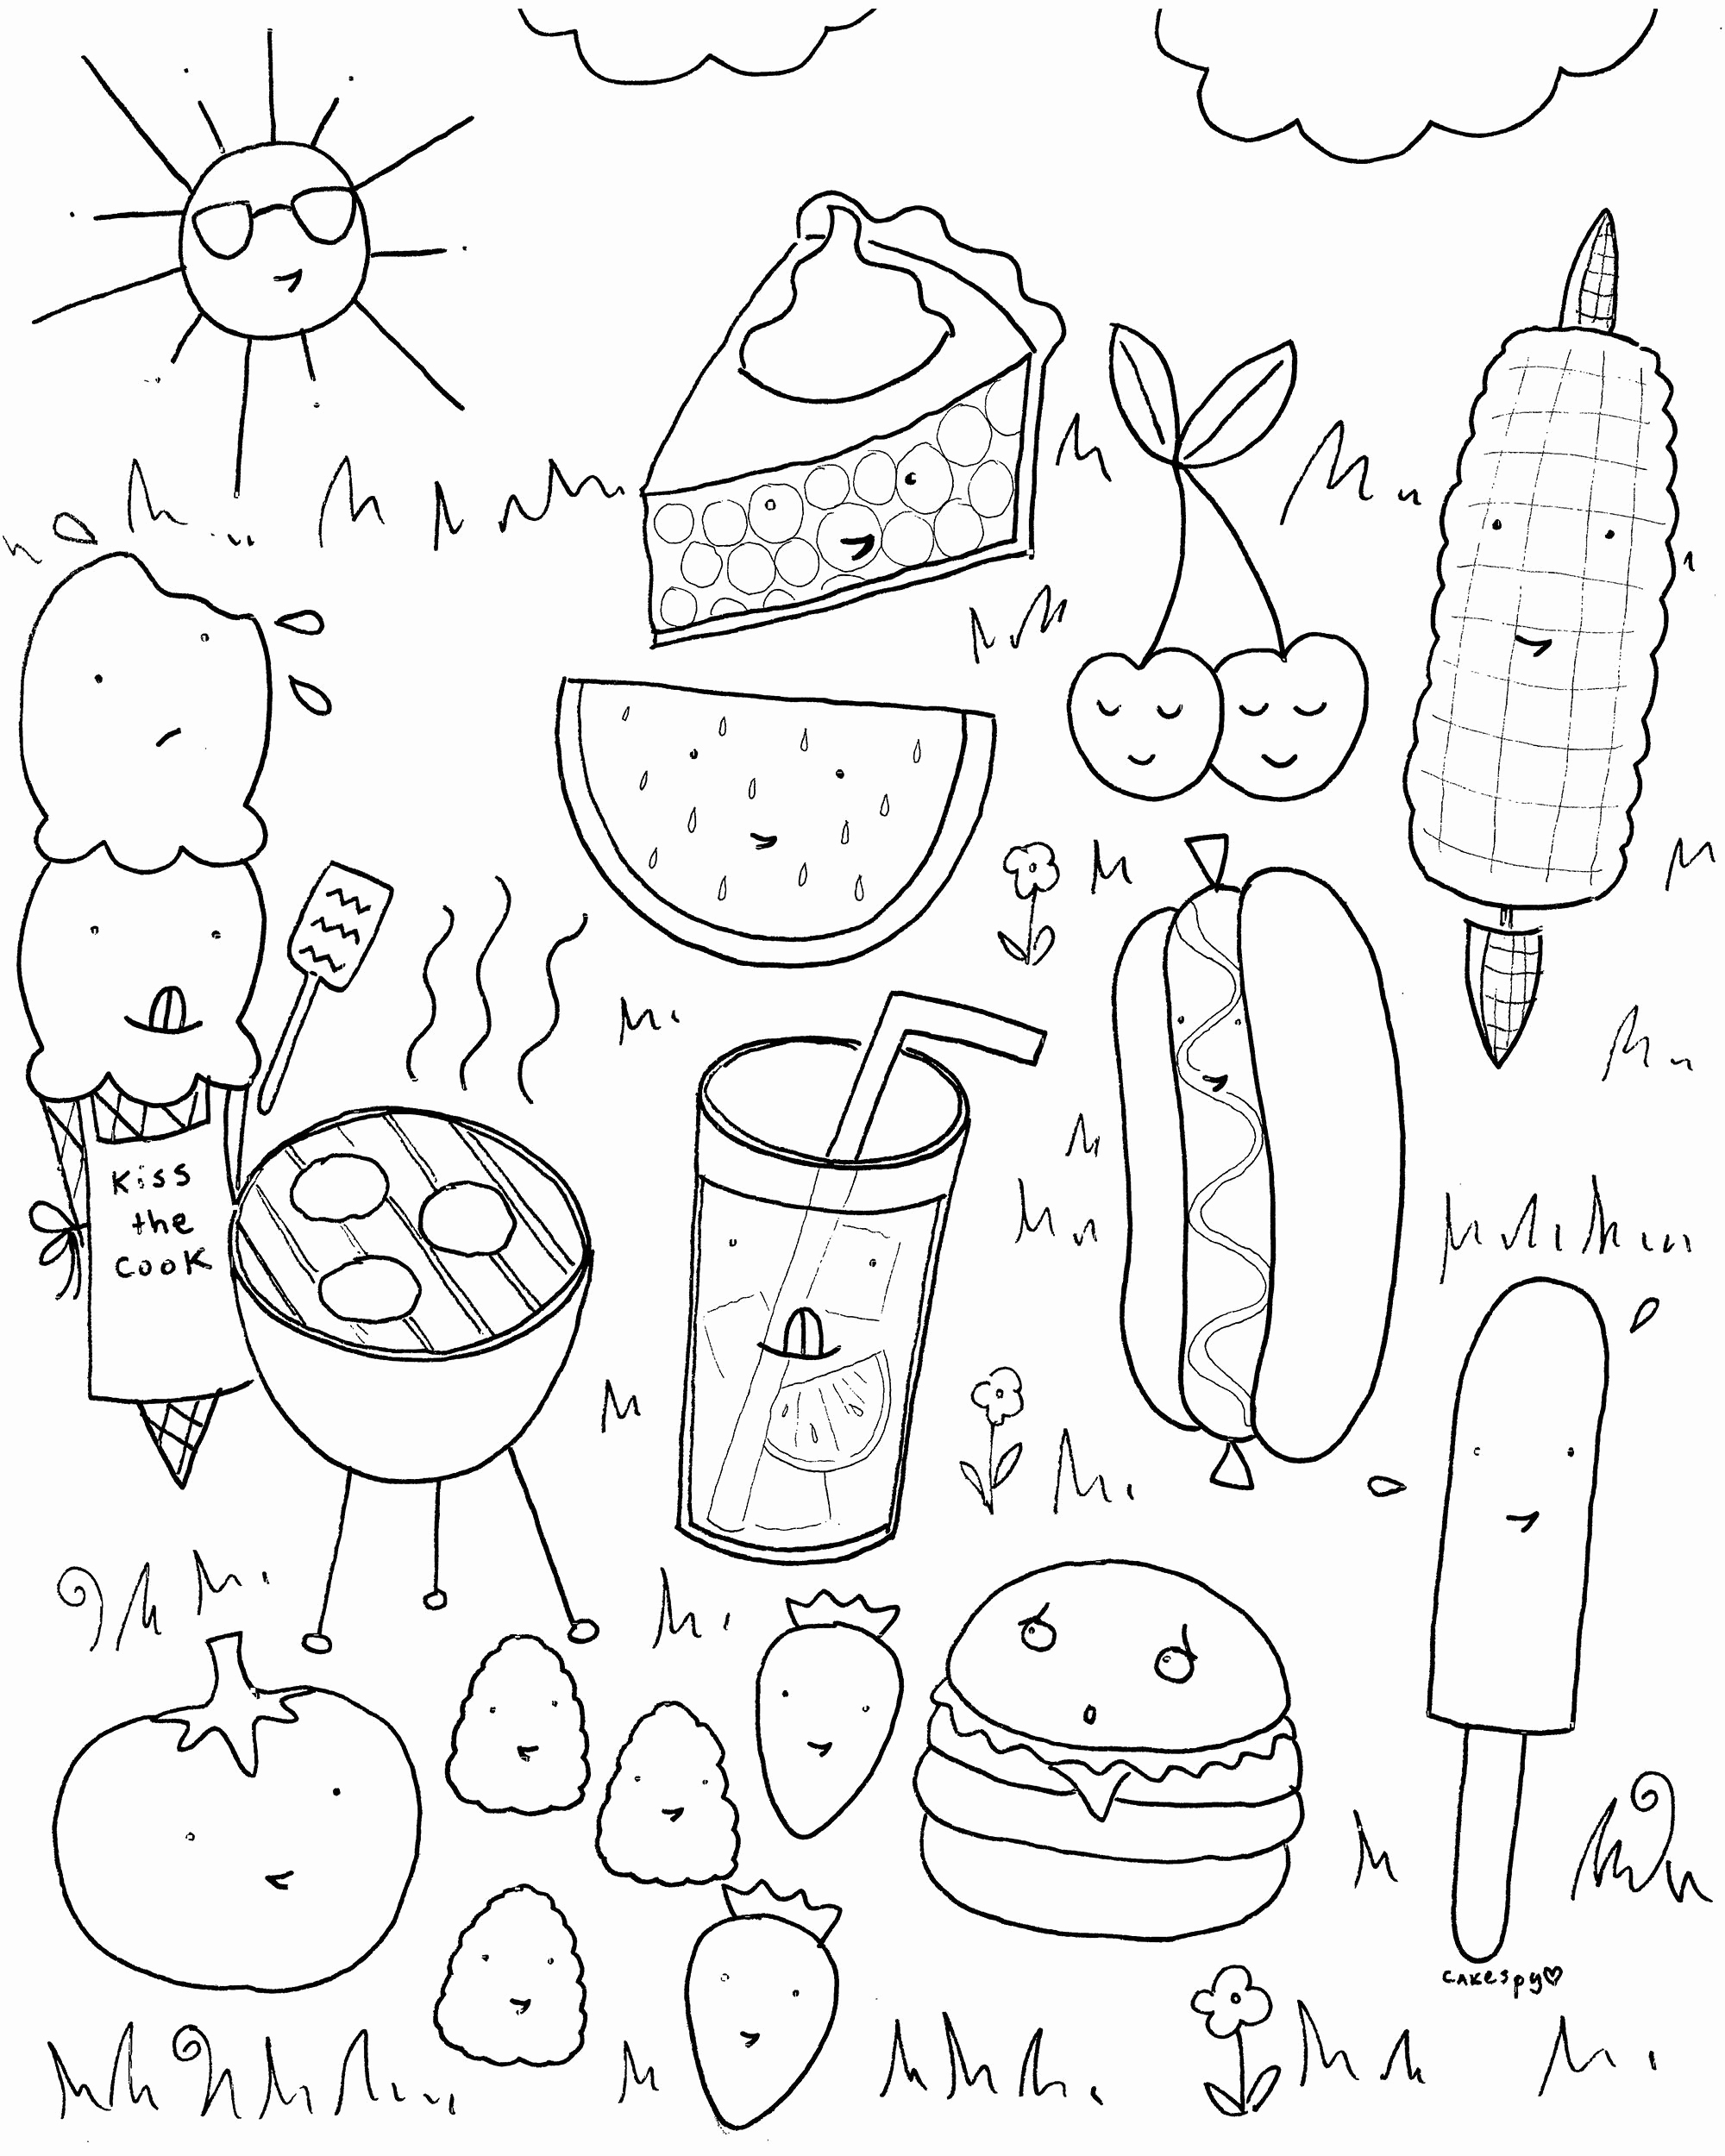 food pyramid coloring pages Collection-Food Coloring Pages for Kindergarten Lovely Summer Activities Coloring Pages Summer Printable Coloring Pages 16-m